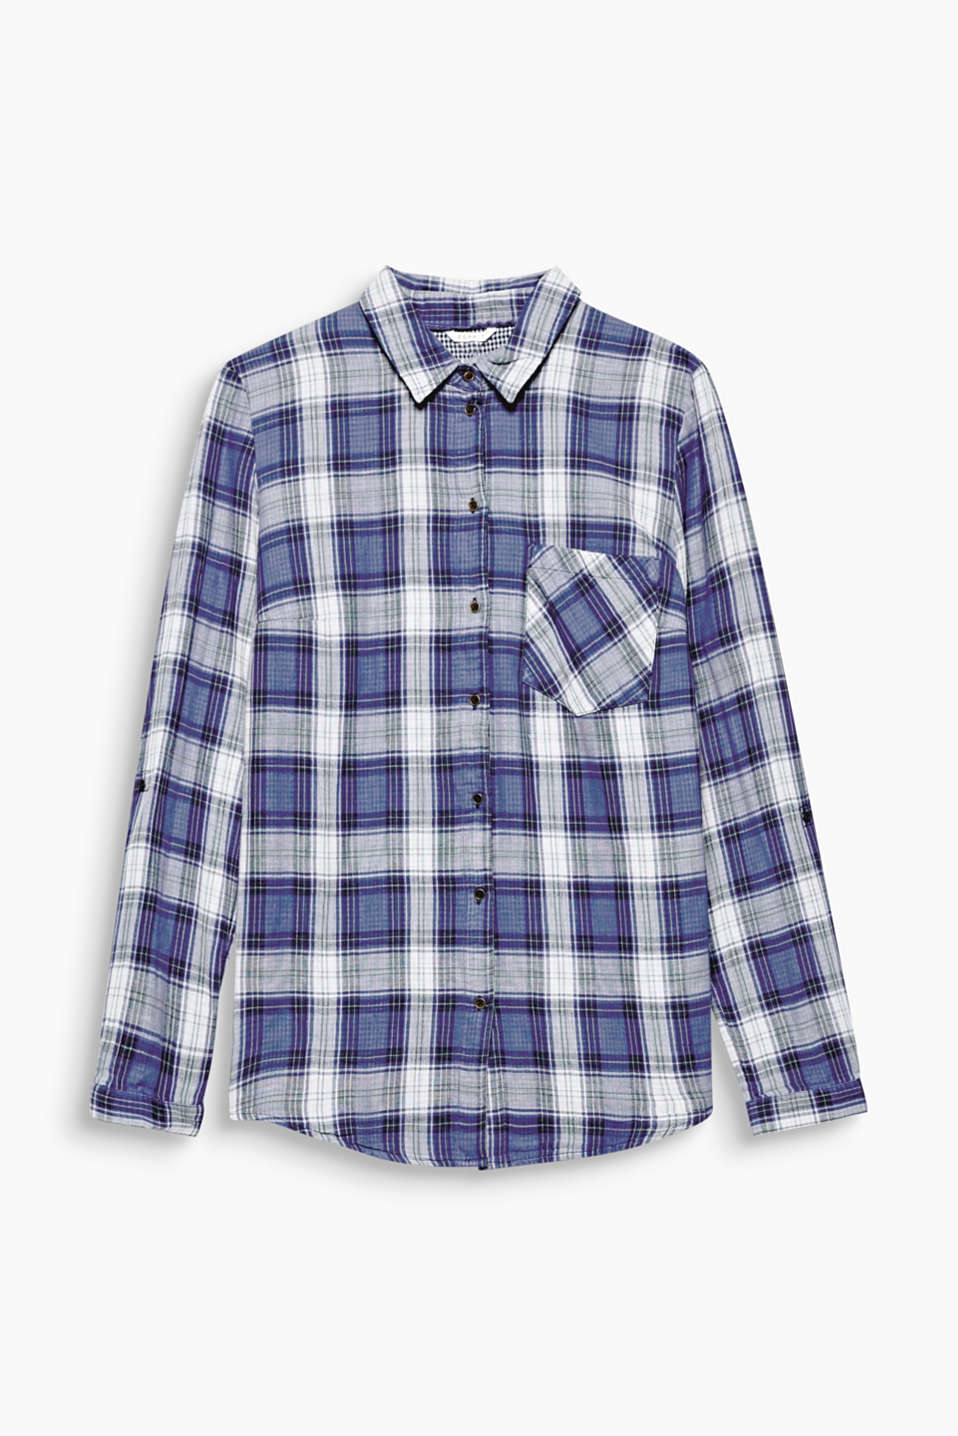 This casual turn-up sleeve blouse is winterproof with its double-layer double-face construction and two check patterns!